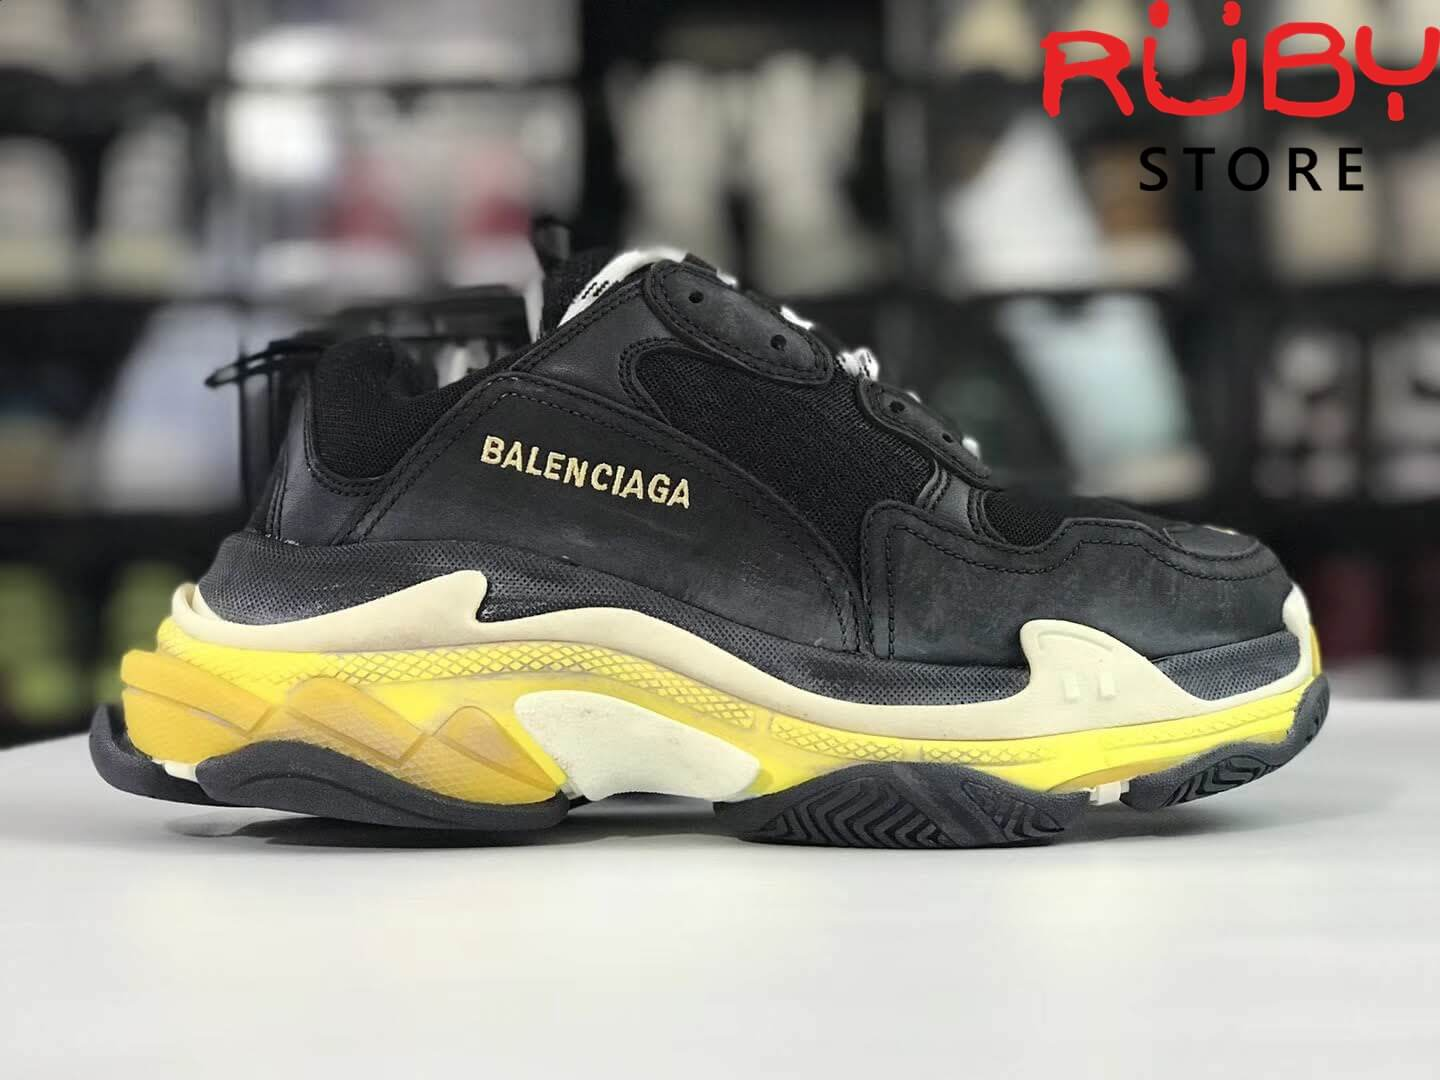 giày-balenciaga-triple-s-replica-11-best-like-authentic-99 (11)